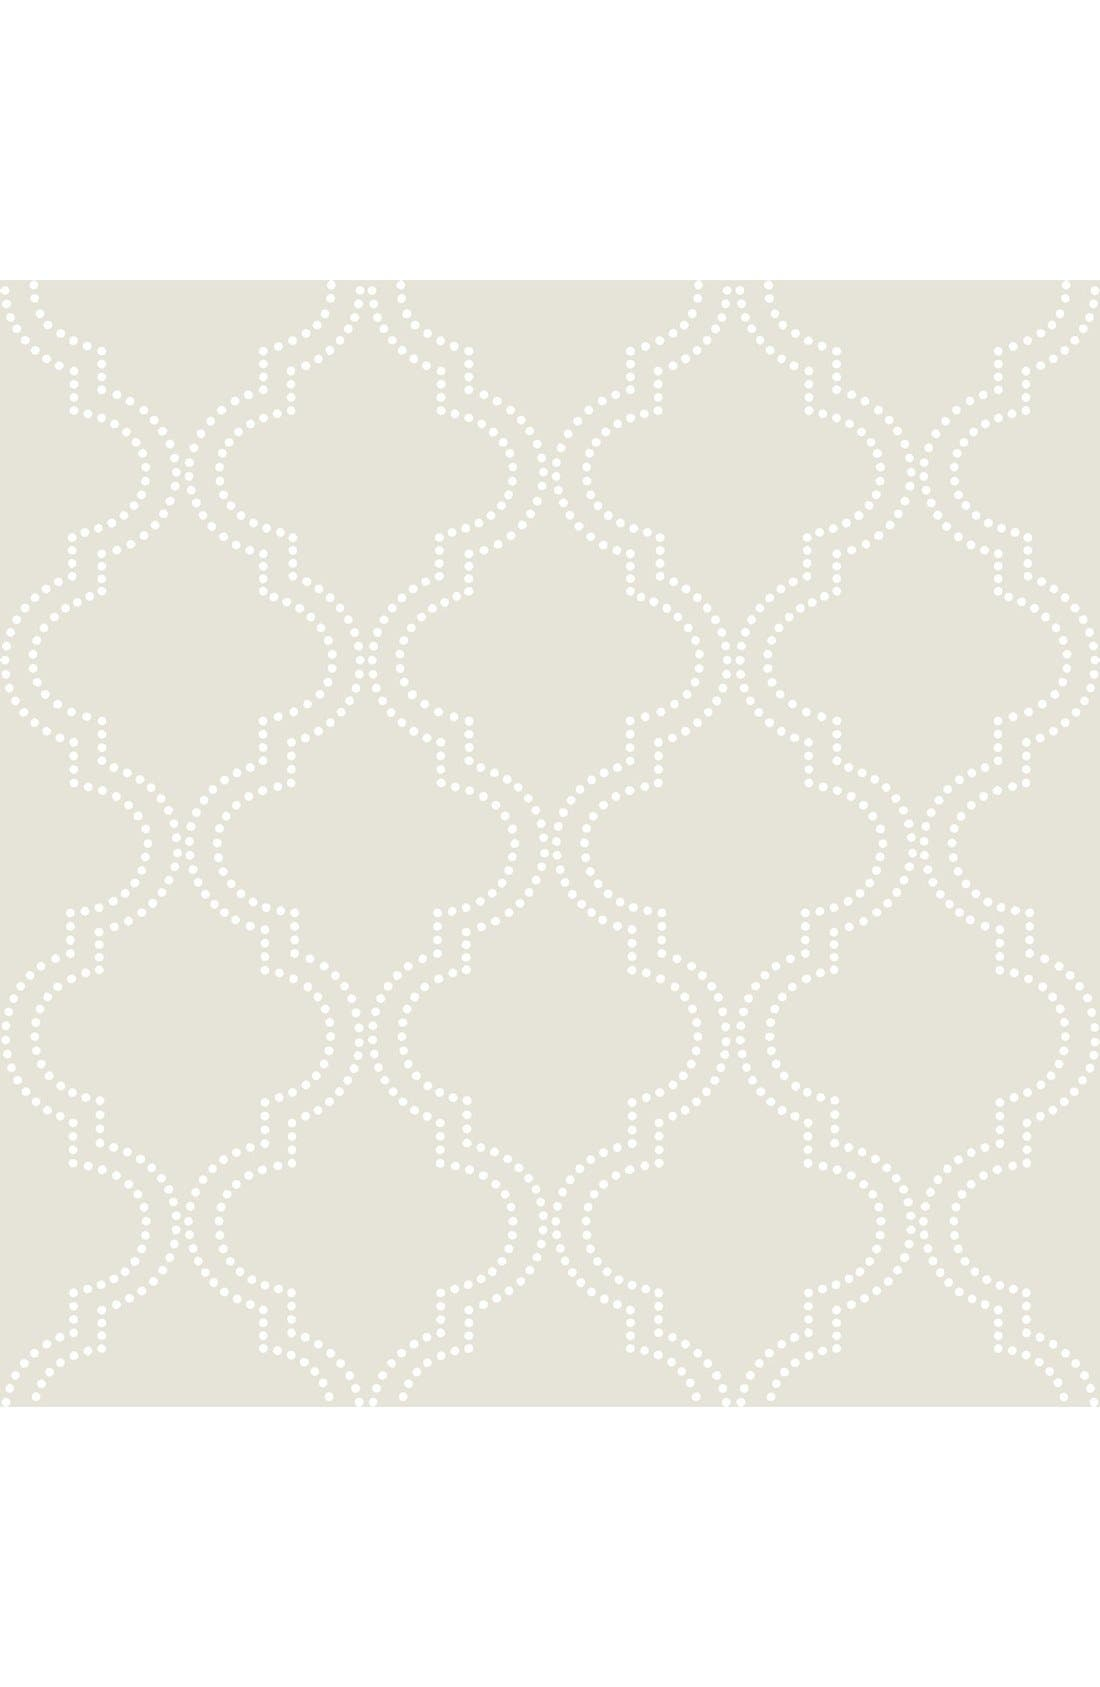 Main Image - Wallpops 'Quatrefoil'  Peel & Stick Vinyl Wallpaper